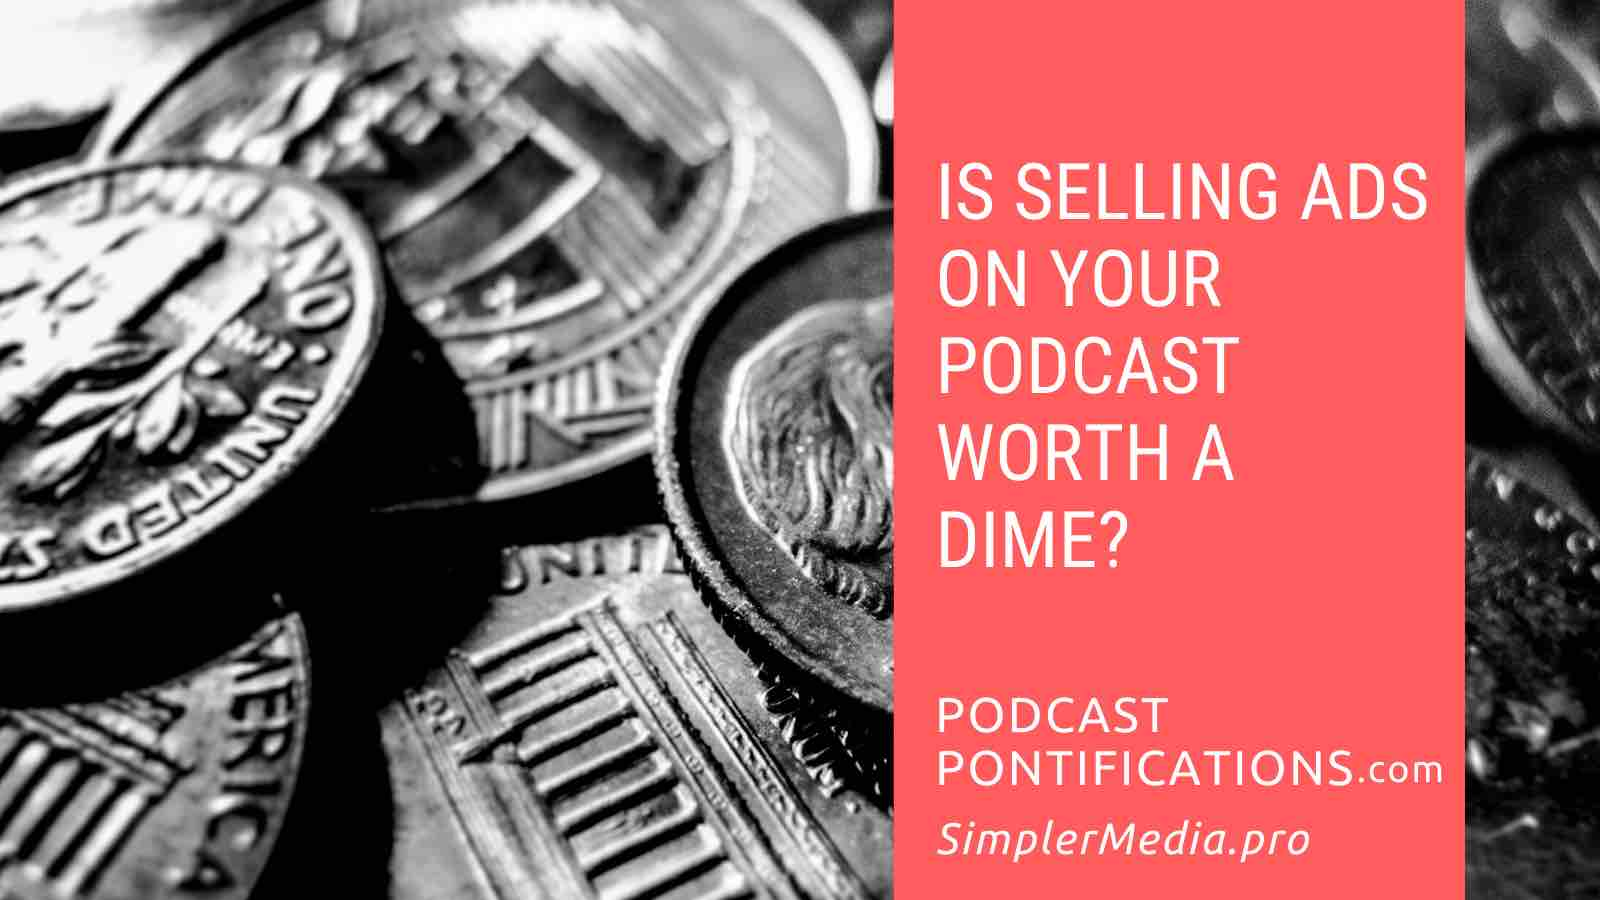 Is Selling Ads On Your Podcast Worth A Dime?